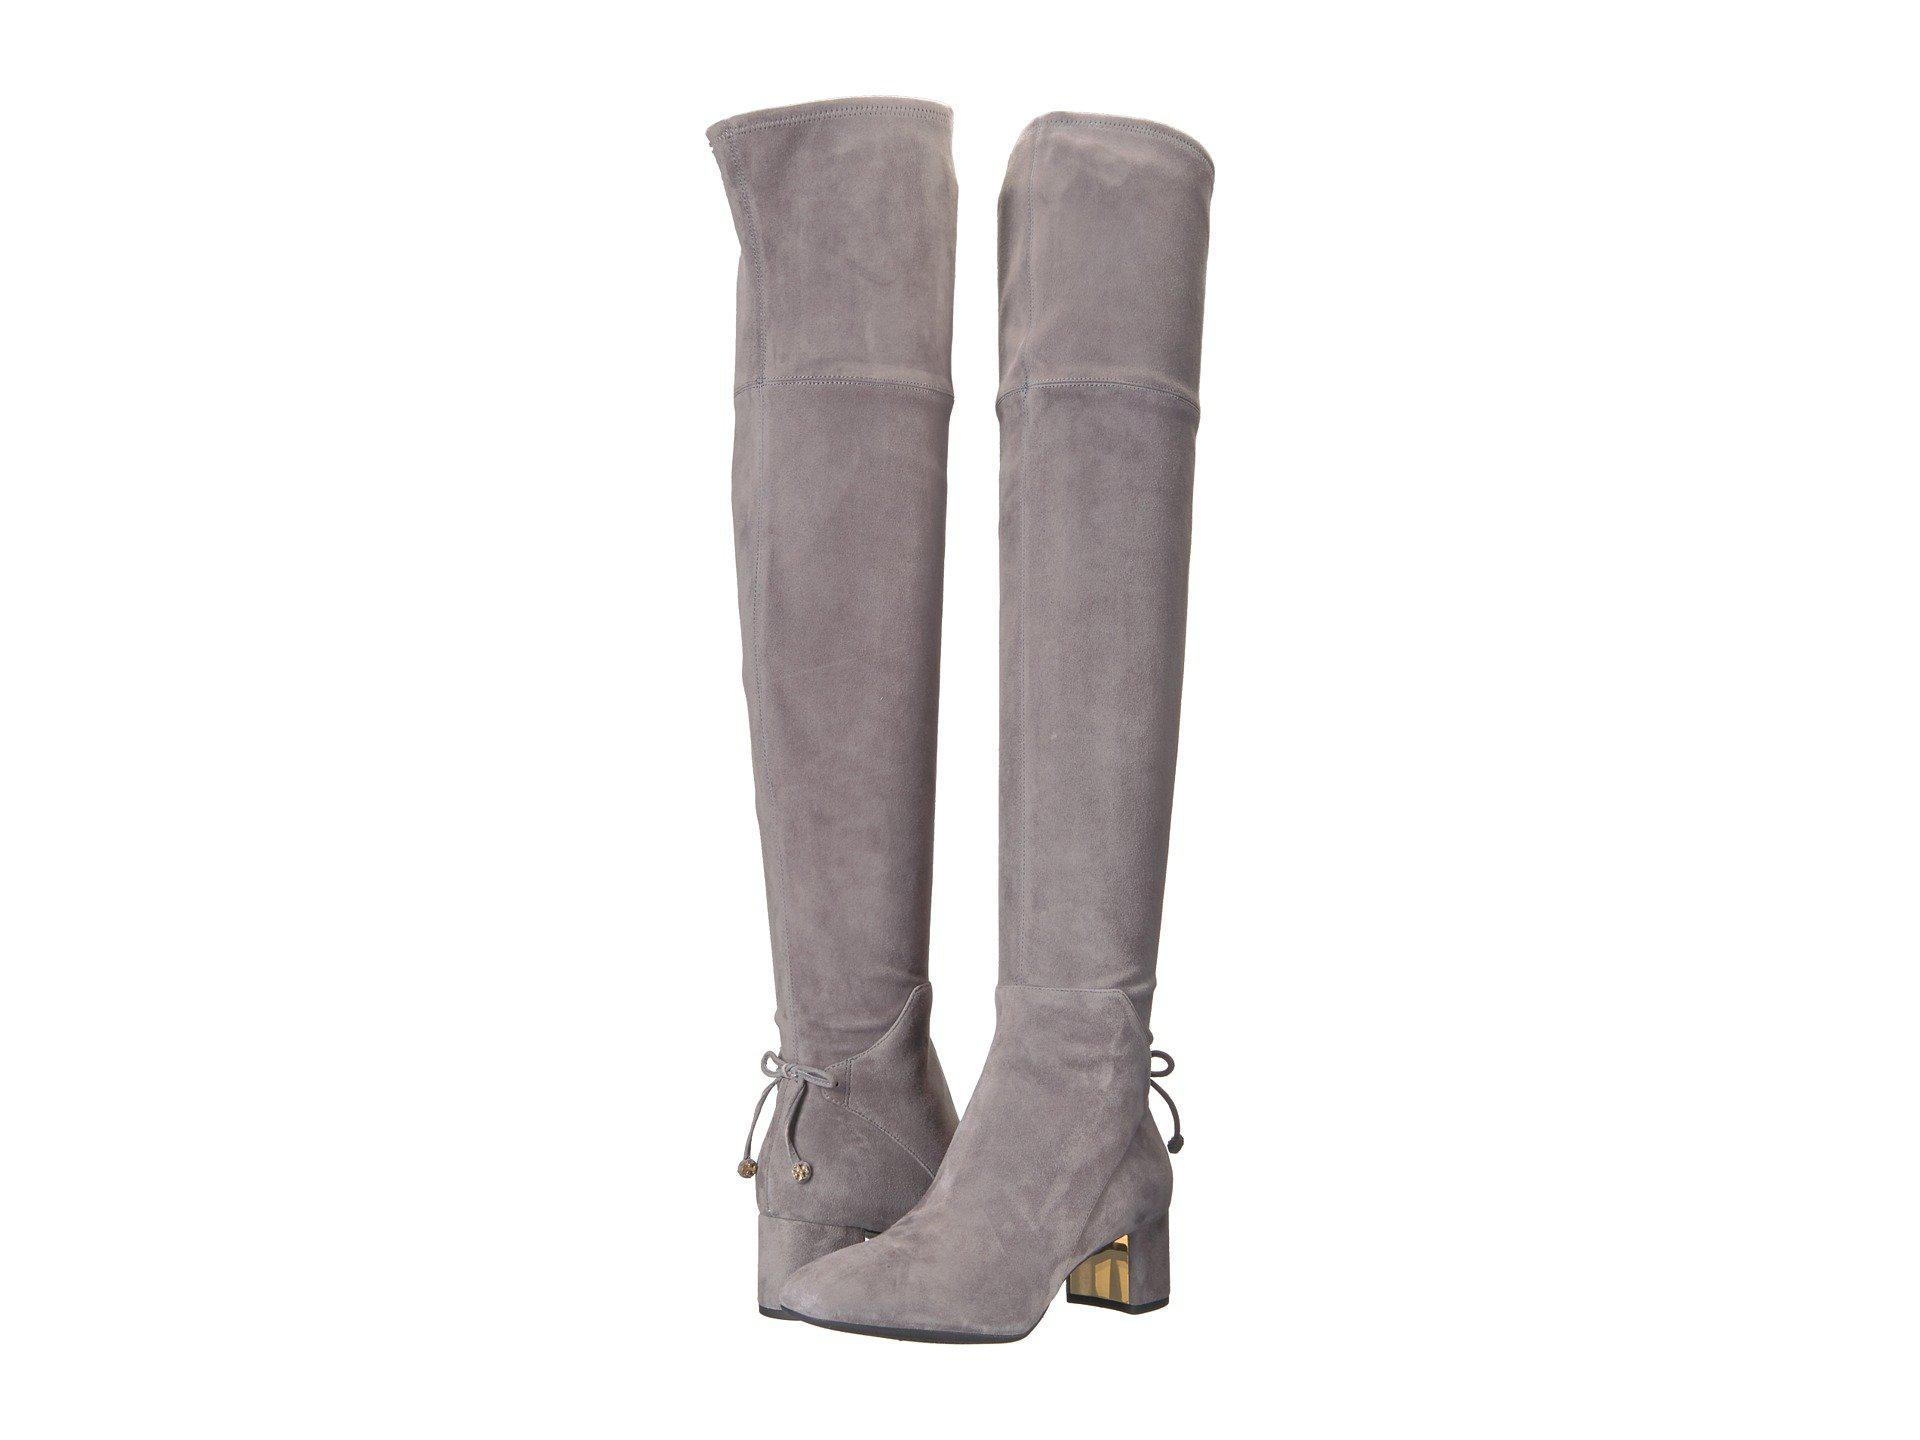 b4cf64c70692 Lyst - Tory Burch Laila 45mm Over The Knee Boot